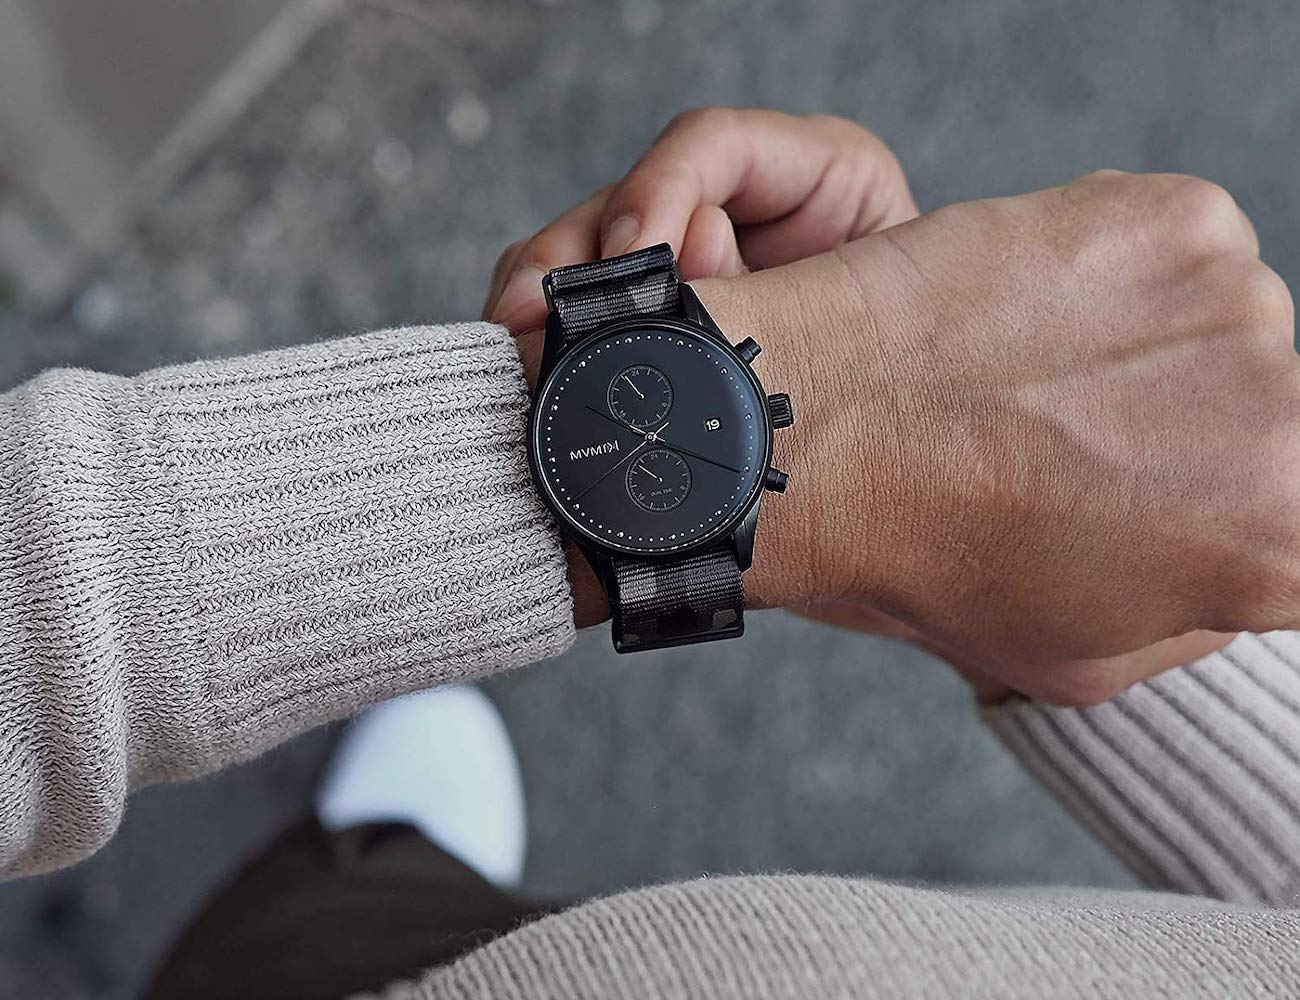 MVMT Voyager Men's Analog Watches is everything you want in a timepiece